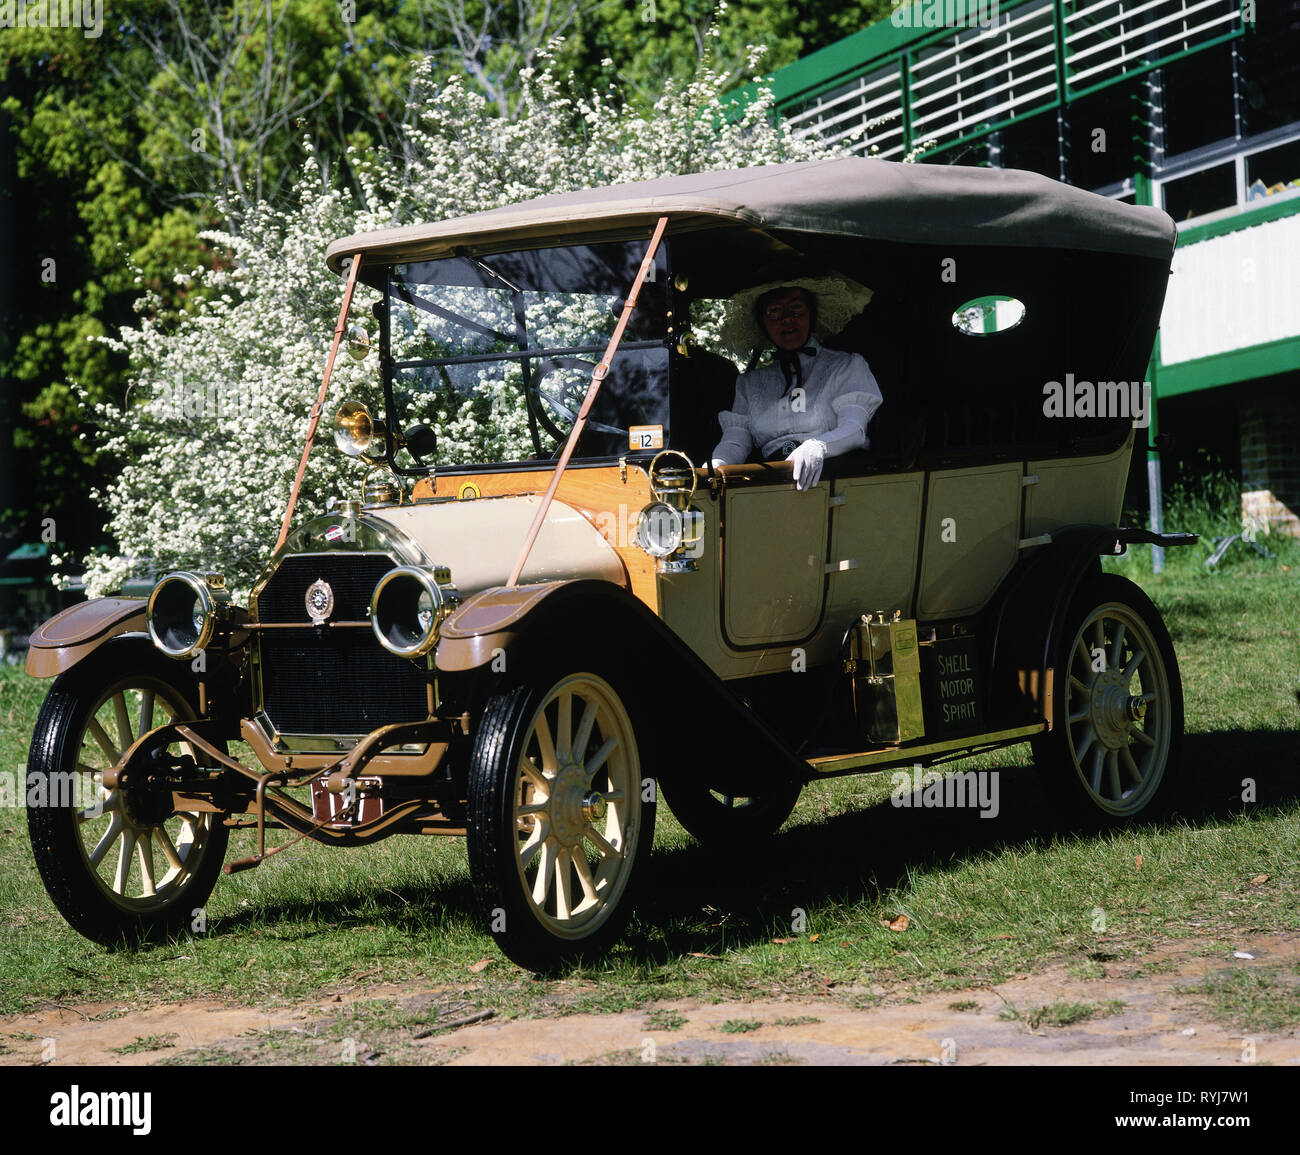 transport / transportation, veteran car, vintage car, circa 1990, Additional-Rights-Clearance-Info-Not-Available - Stock Image